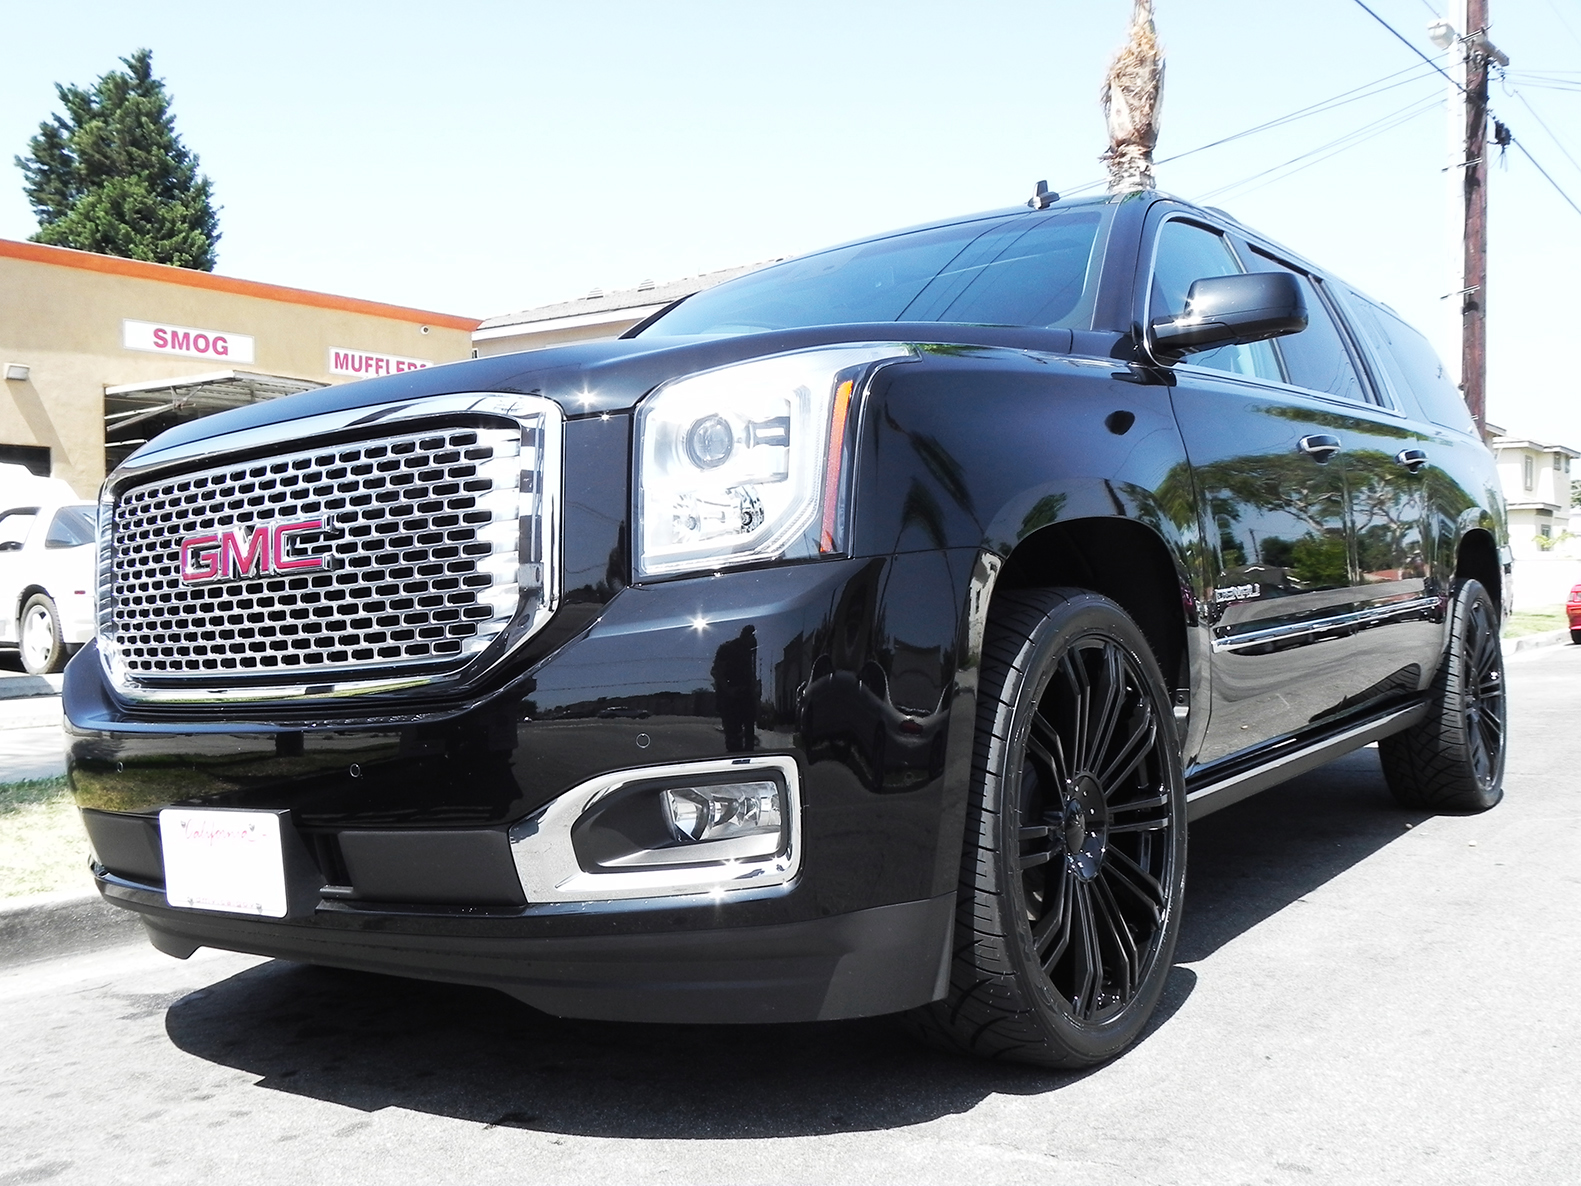 2019 GMC Yukon XL photo - 4